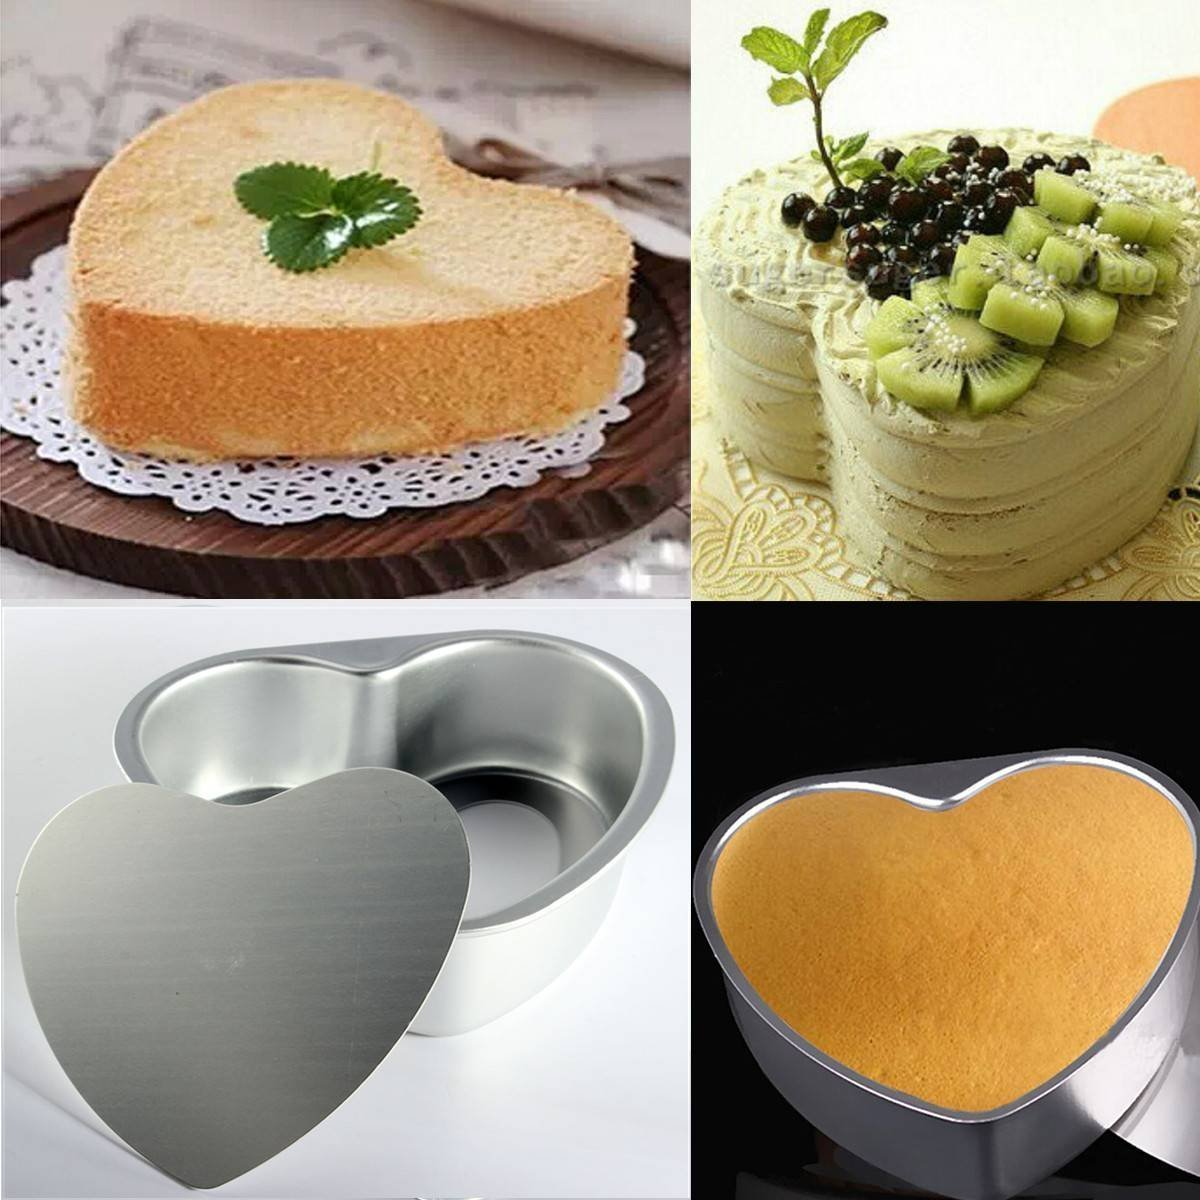 Cherion 4PC Aluminium Heart Shaped Cake Pan Set with Removable Bottom for Valentine's Day - 5'' 6'' 8'' 10'' by Cherion (Image #5)